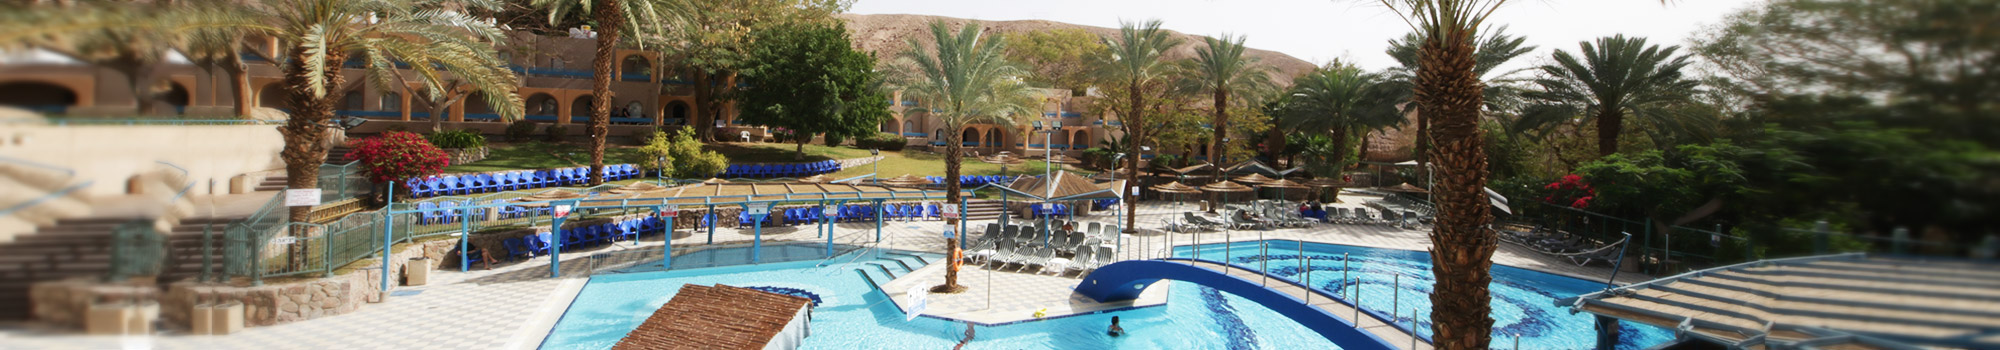 Club In Eilat  Israel - The pool